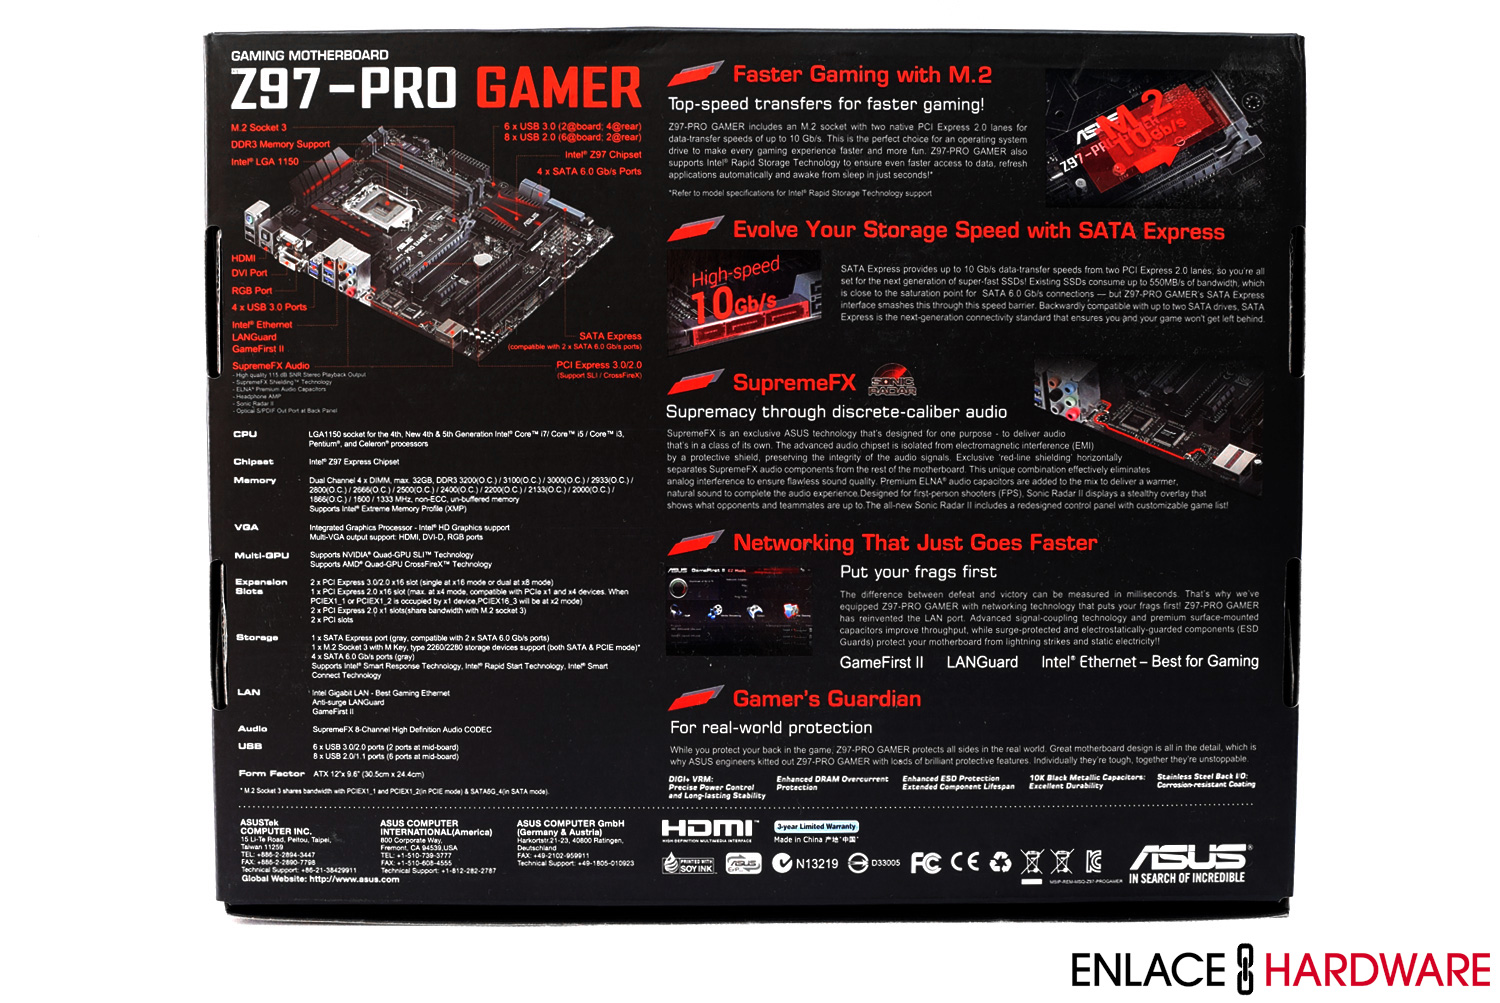 ASUS-Z97-Pro-Gamer-Review-3